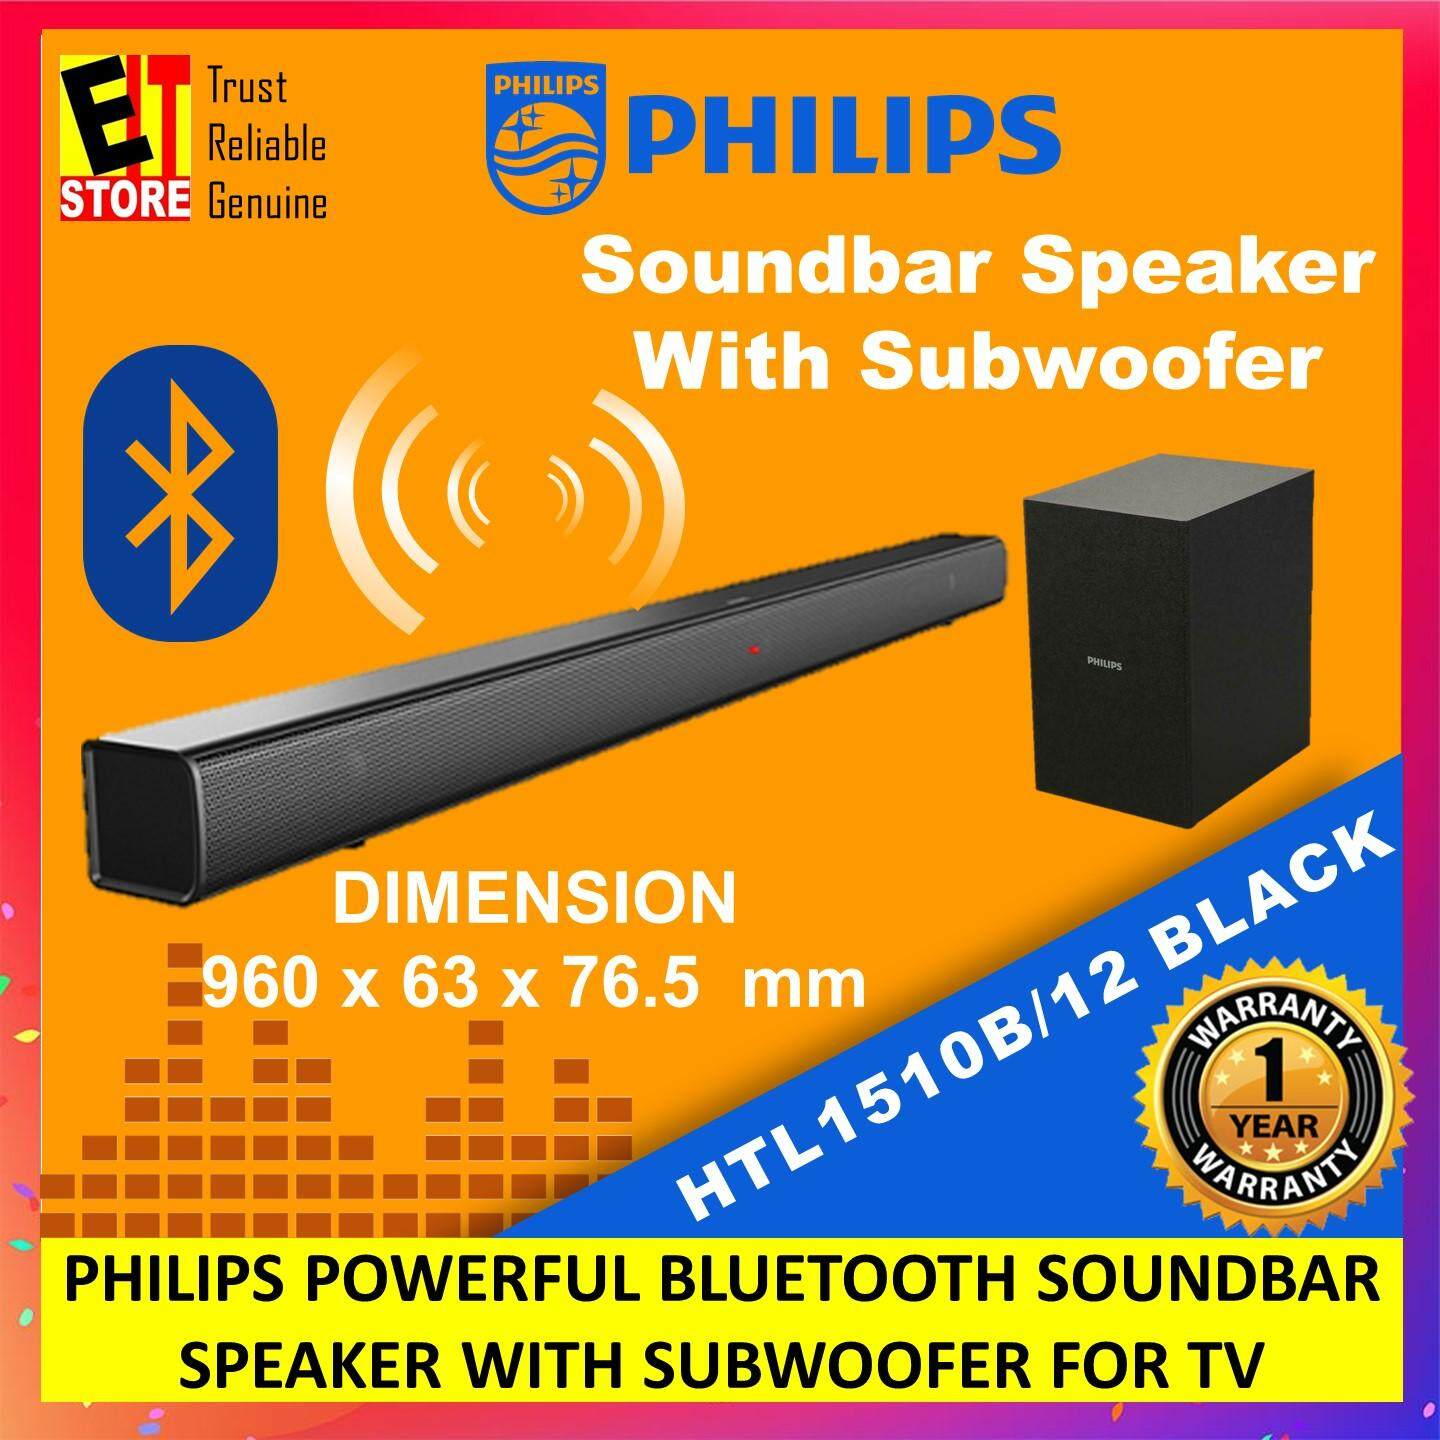 PHILIPS POWERFUL BLUETOOTH SOUNDBAR SPEAKER WITH SUBWOOFER FOR TV (HTL1510B/12) Malaysia